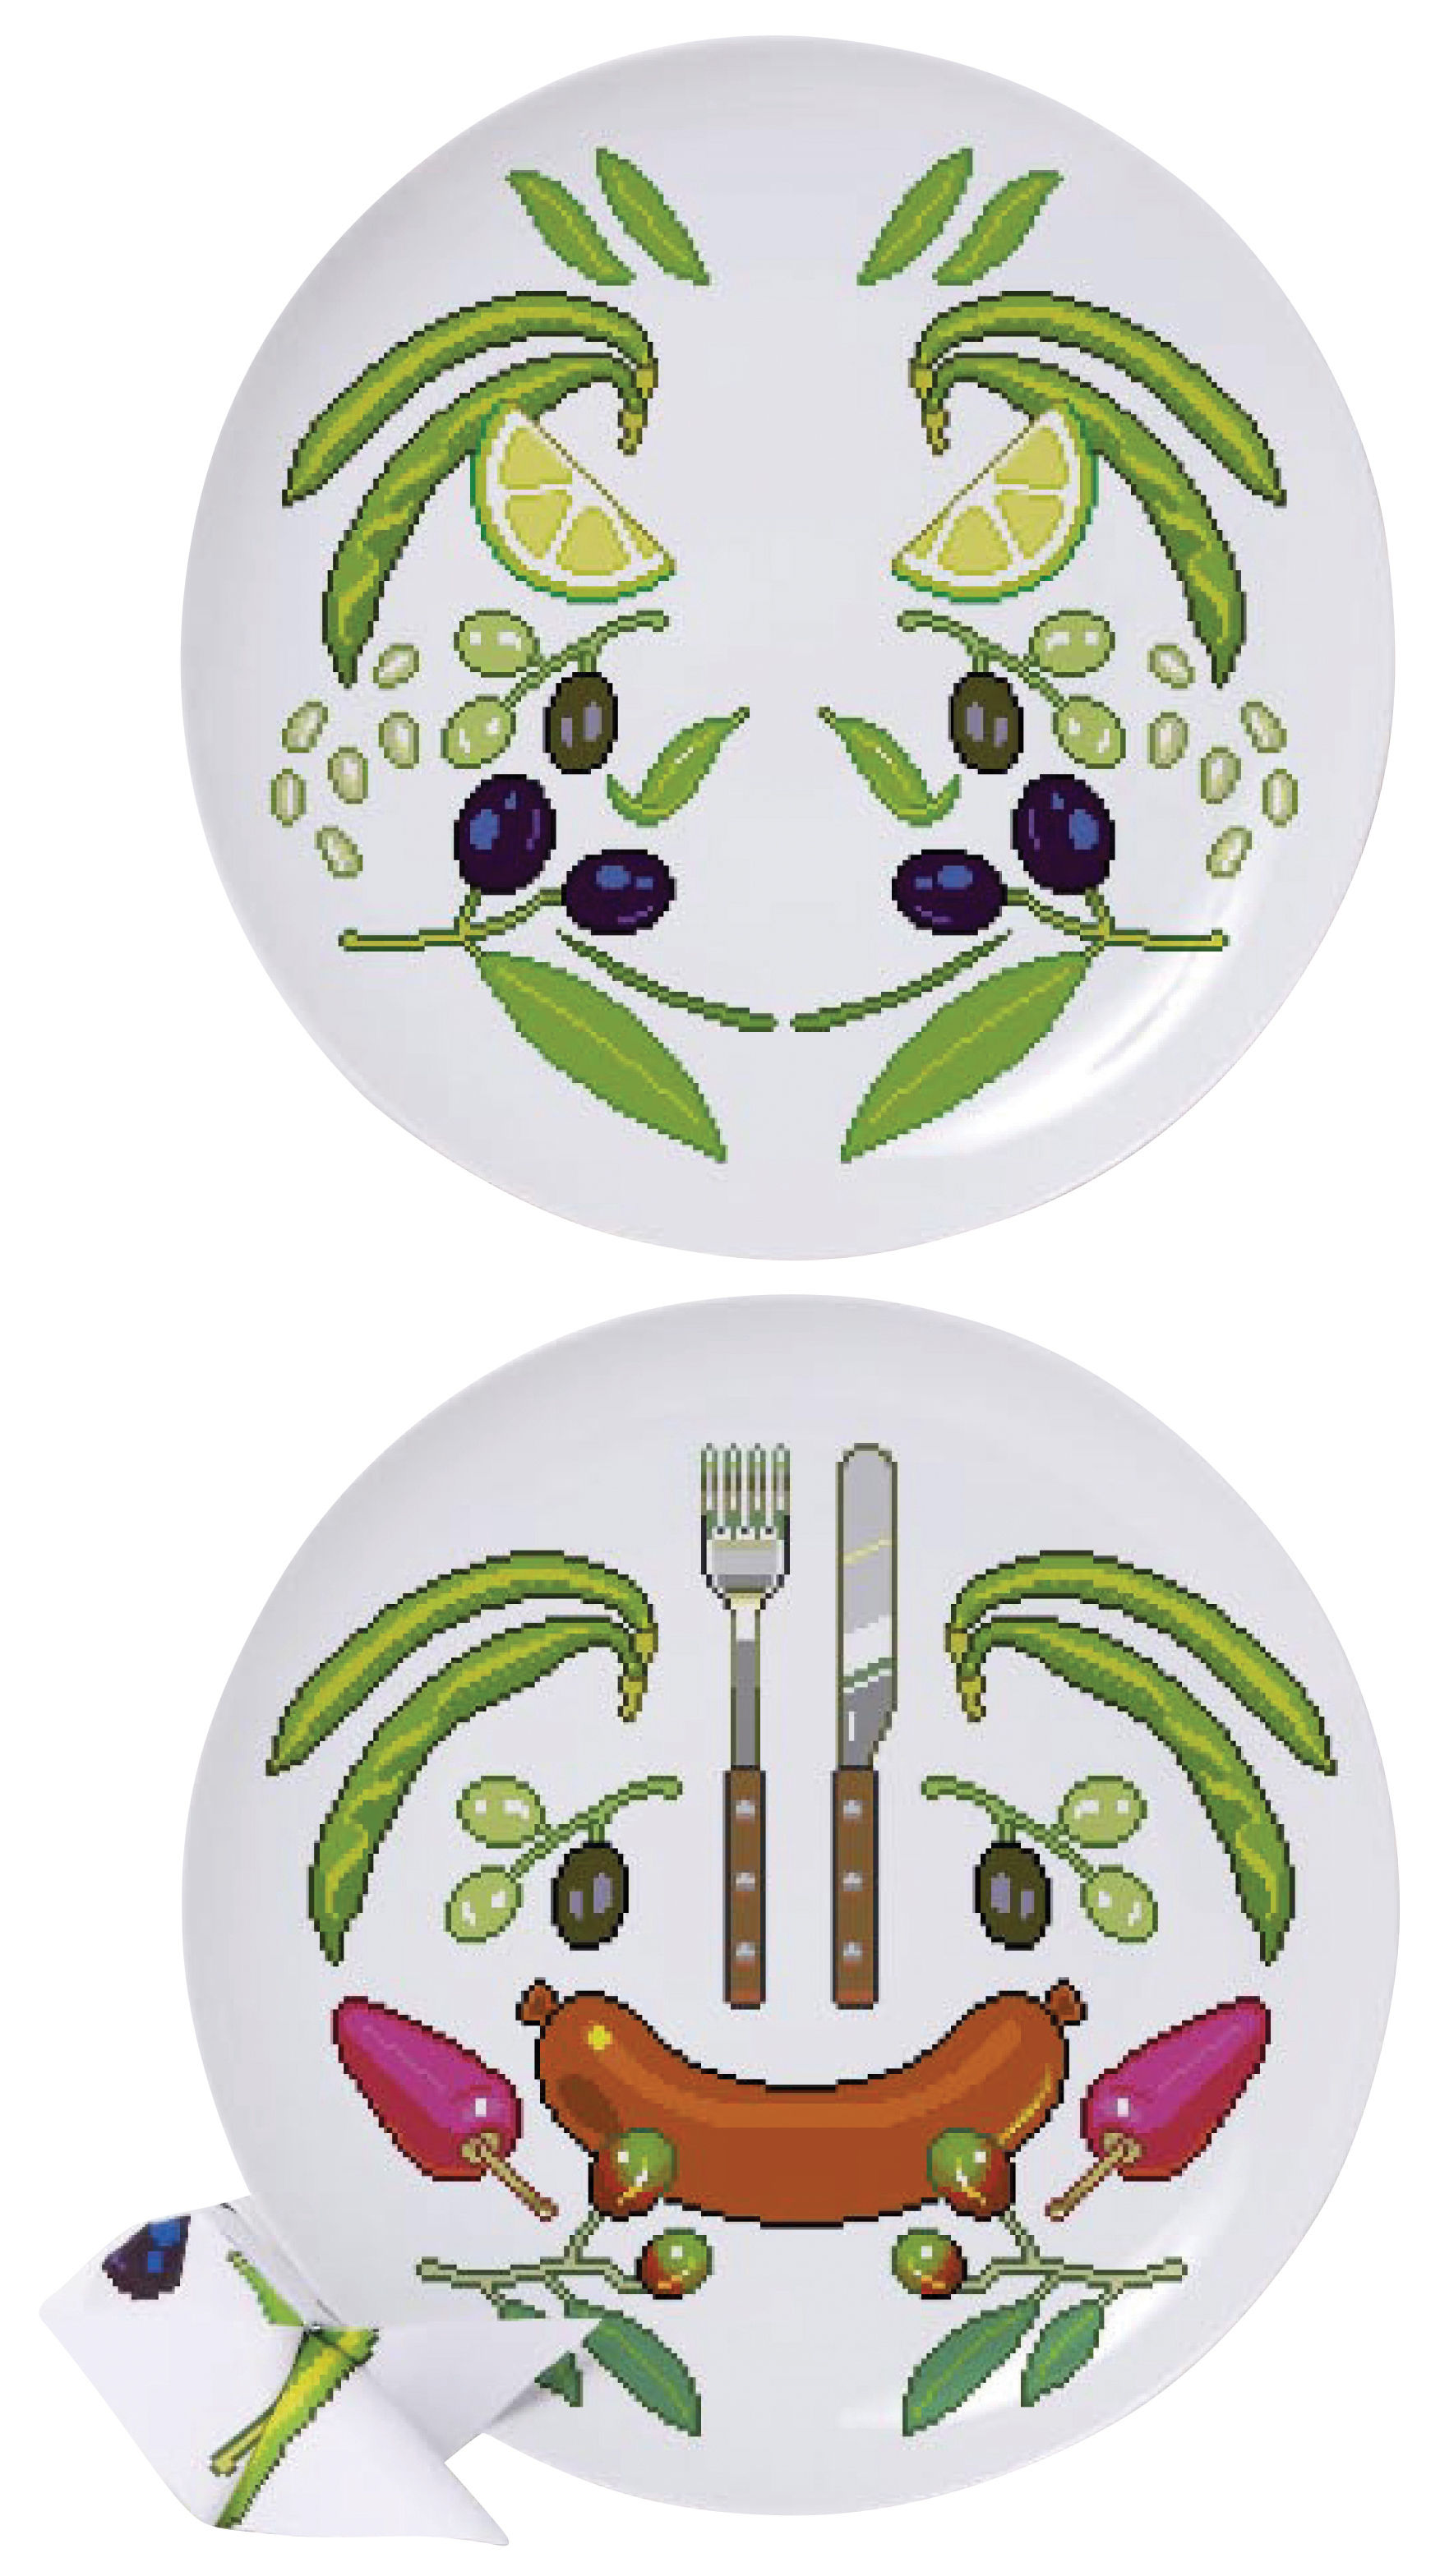 Kitchenware - Fun in the kitchen - Surface 02 - Y'mie 2 Plate - Set of 2 by Domestic -  - China